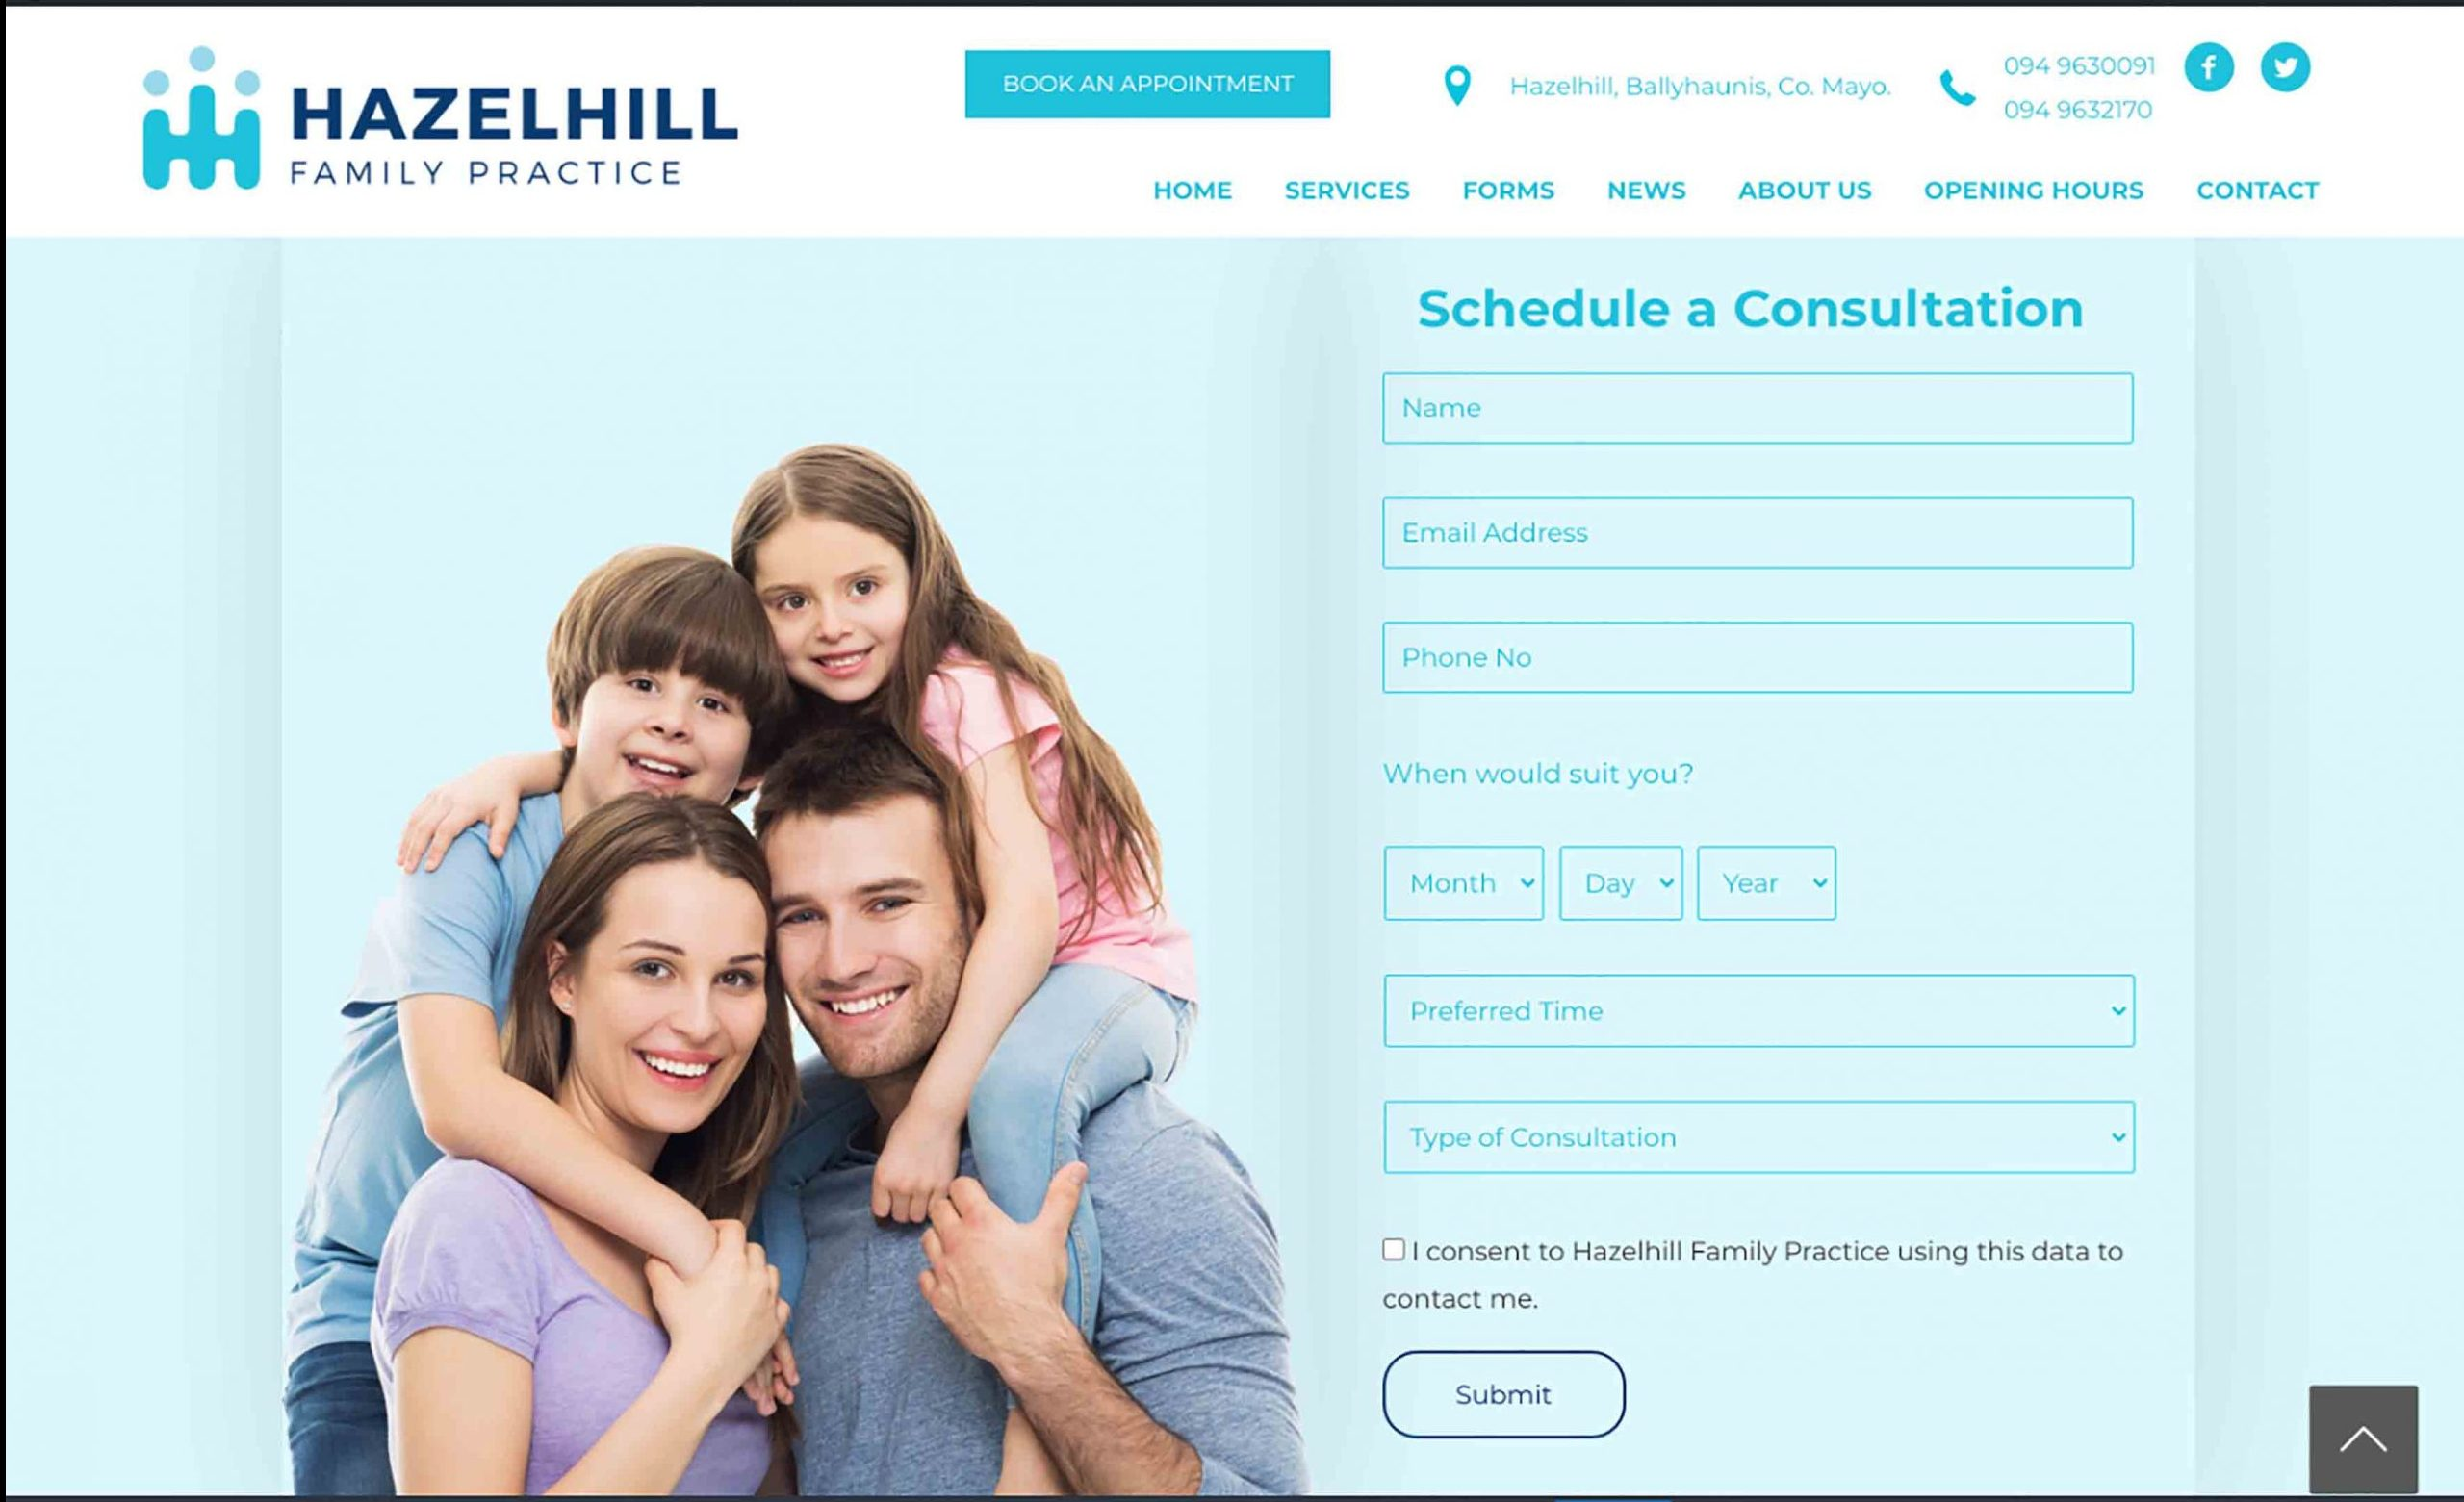 Book an Appointment with Hazelhill Family Practice, GP and Doctor in Ballyhaunis, Co. Mayo